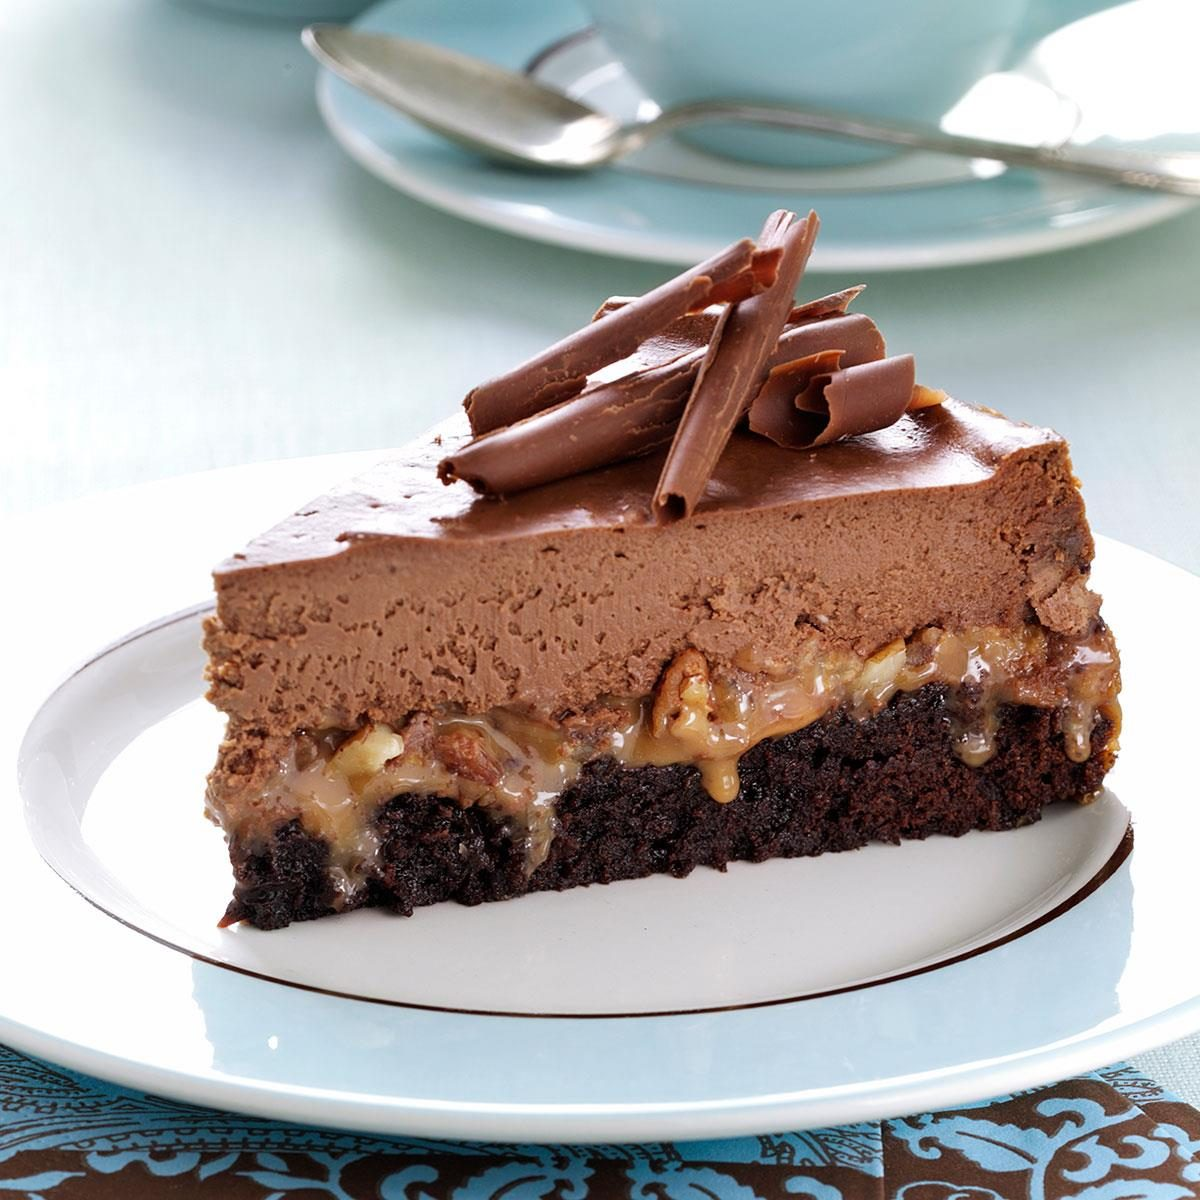 23 of Our Most Decadent Chocolate Desserts | Taste of Home